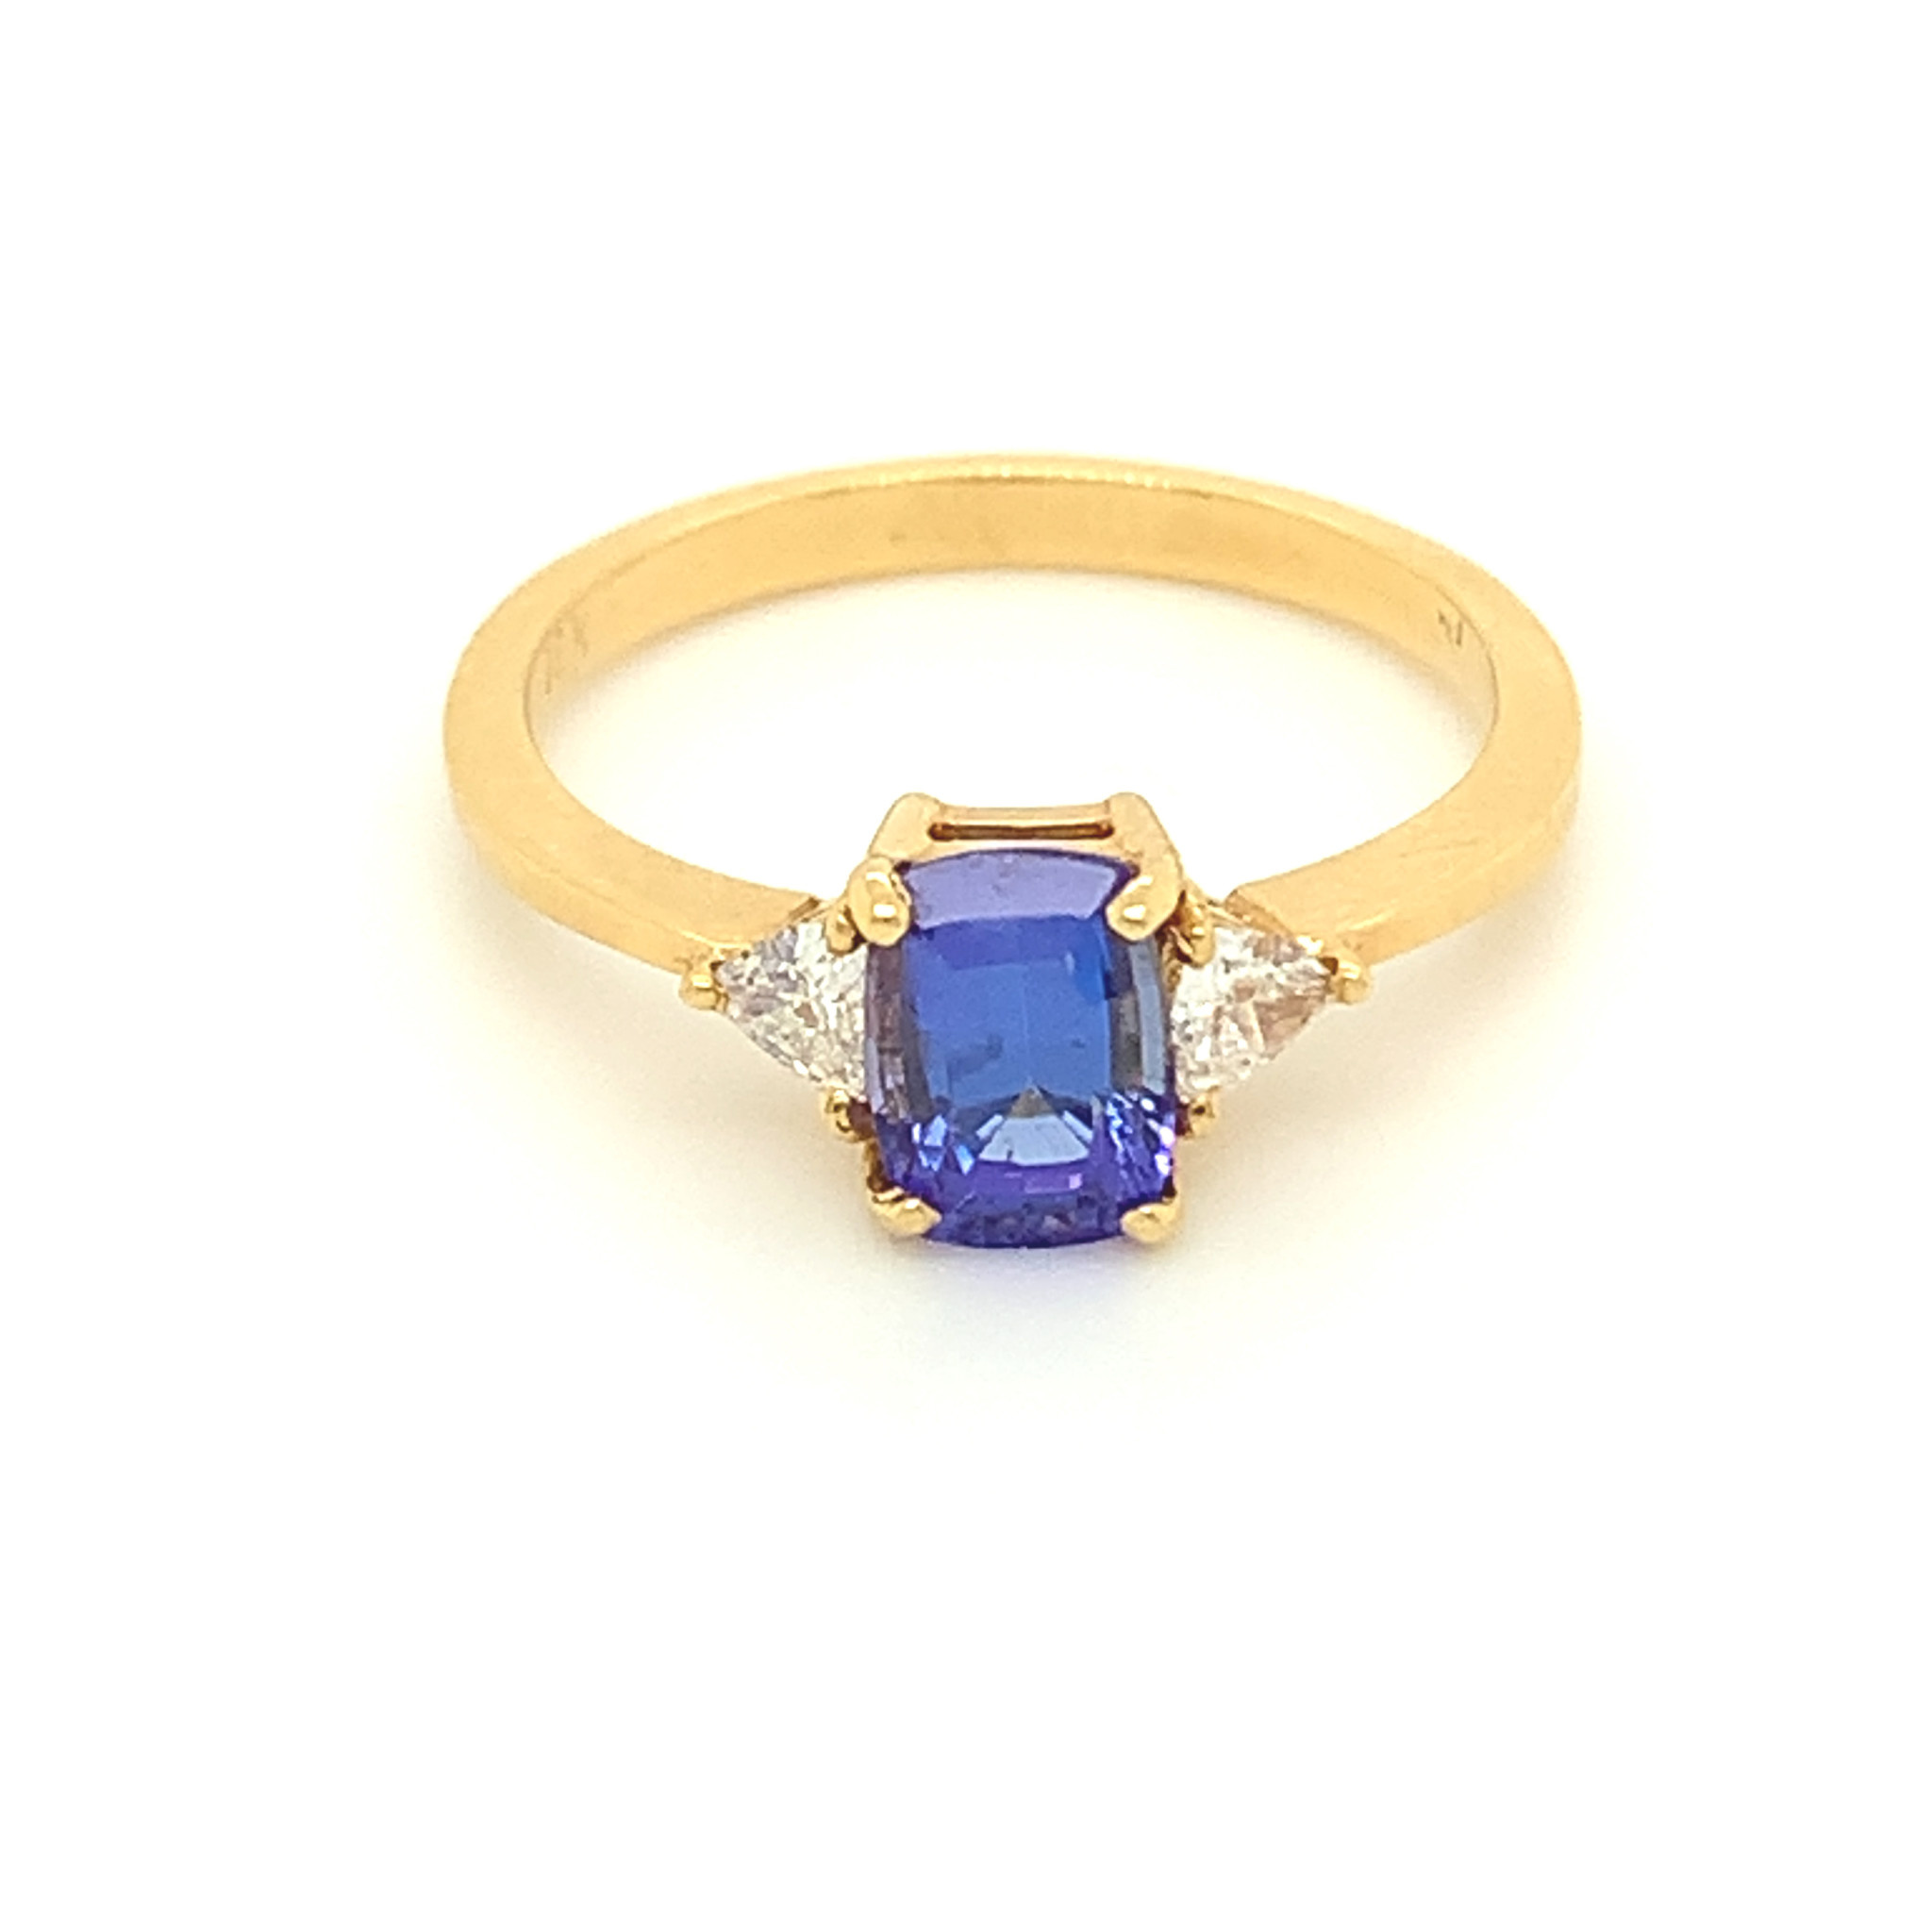 Freedman 18kt yellow gold Tanzanite & Diamond 3 stone Ring